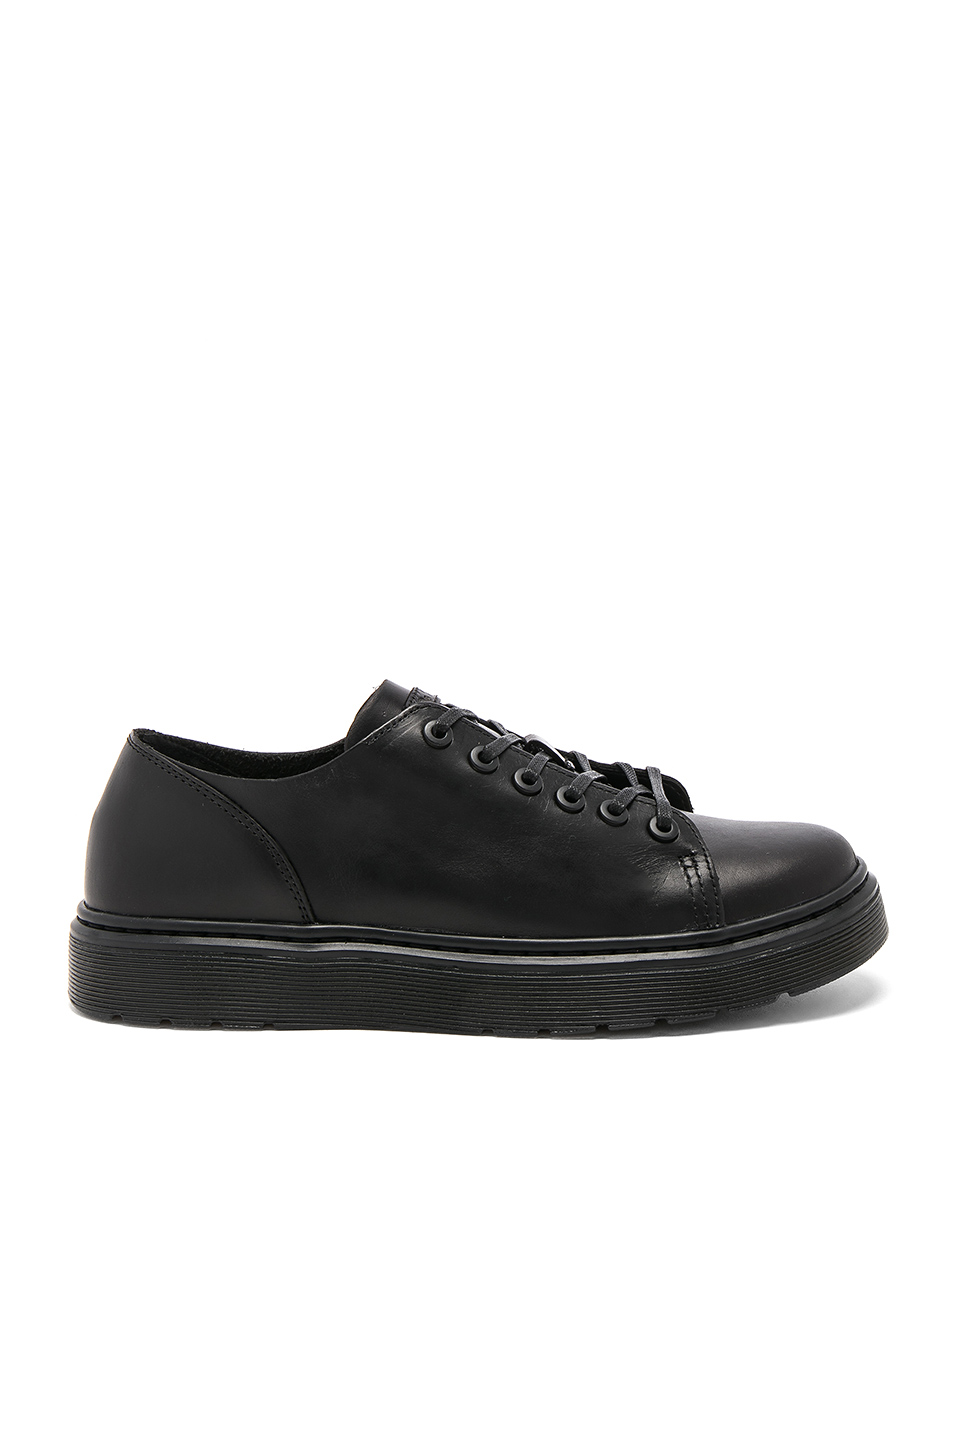 Dr. Martens Dante 6 Eye Leather Shoes in Black